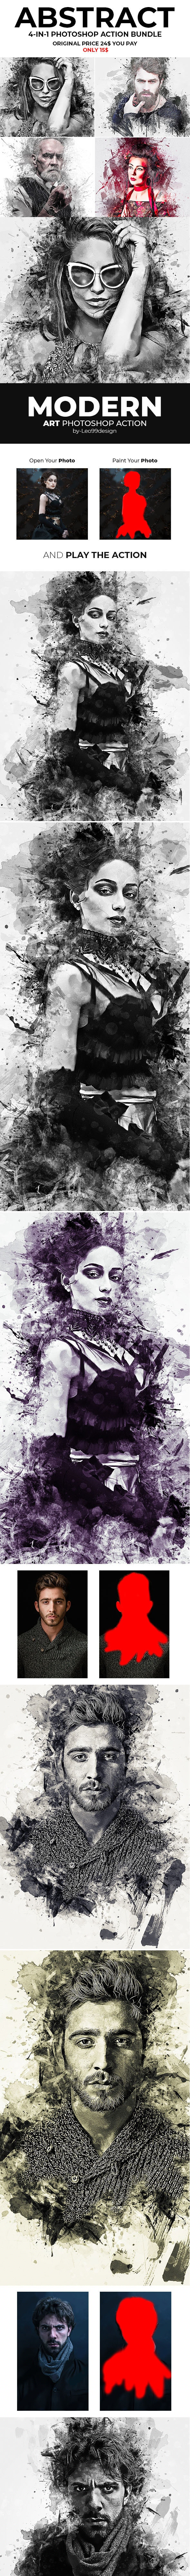 Abstract 4 in 1 Photoshop Action Bundle - Photo Effects Actions